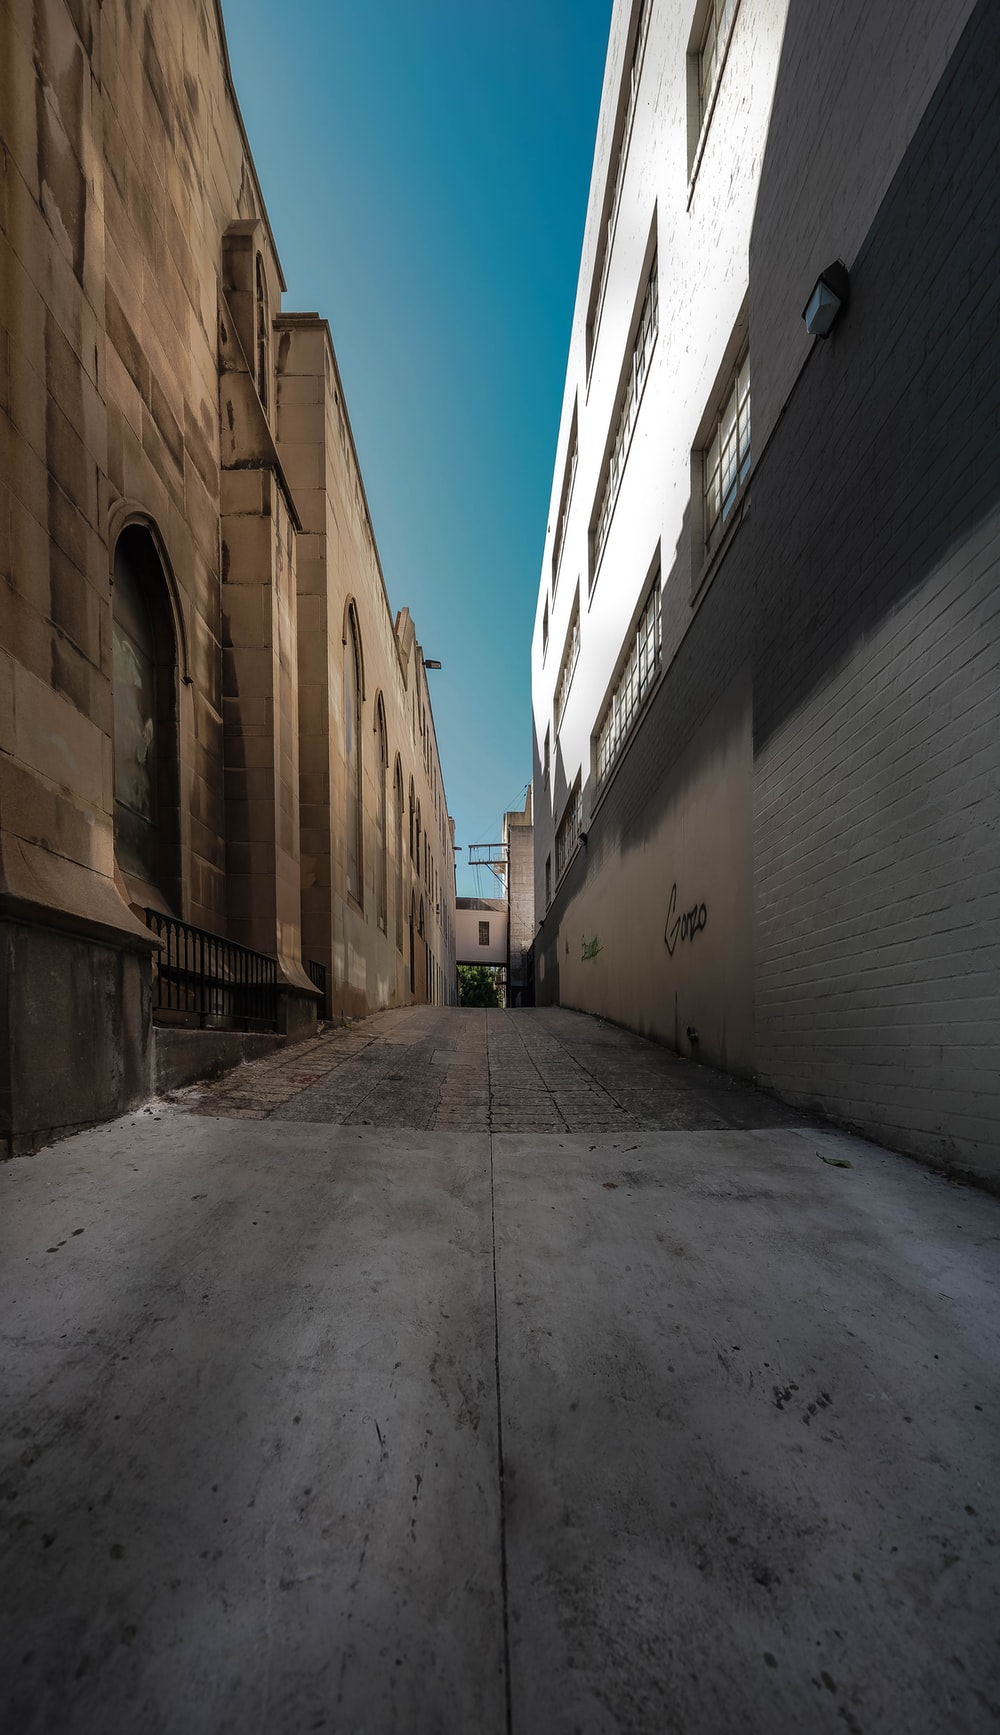 gray concrete pathway between brown concrete buildings during daytime